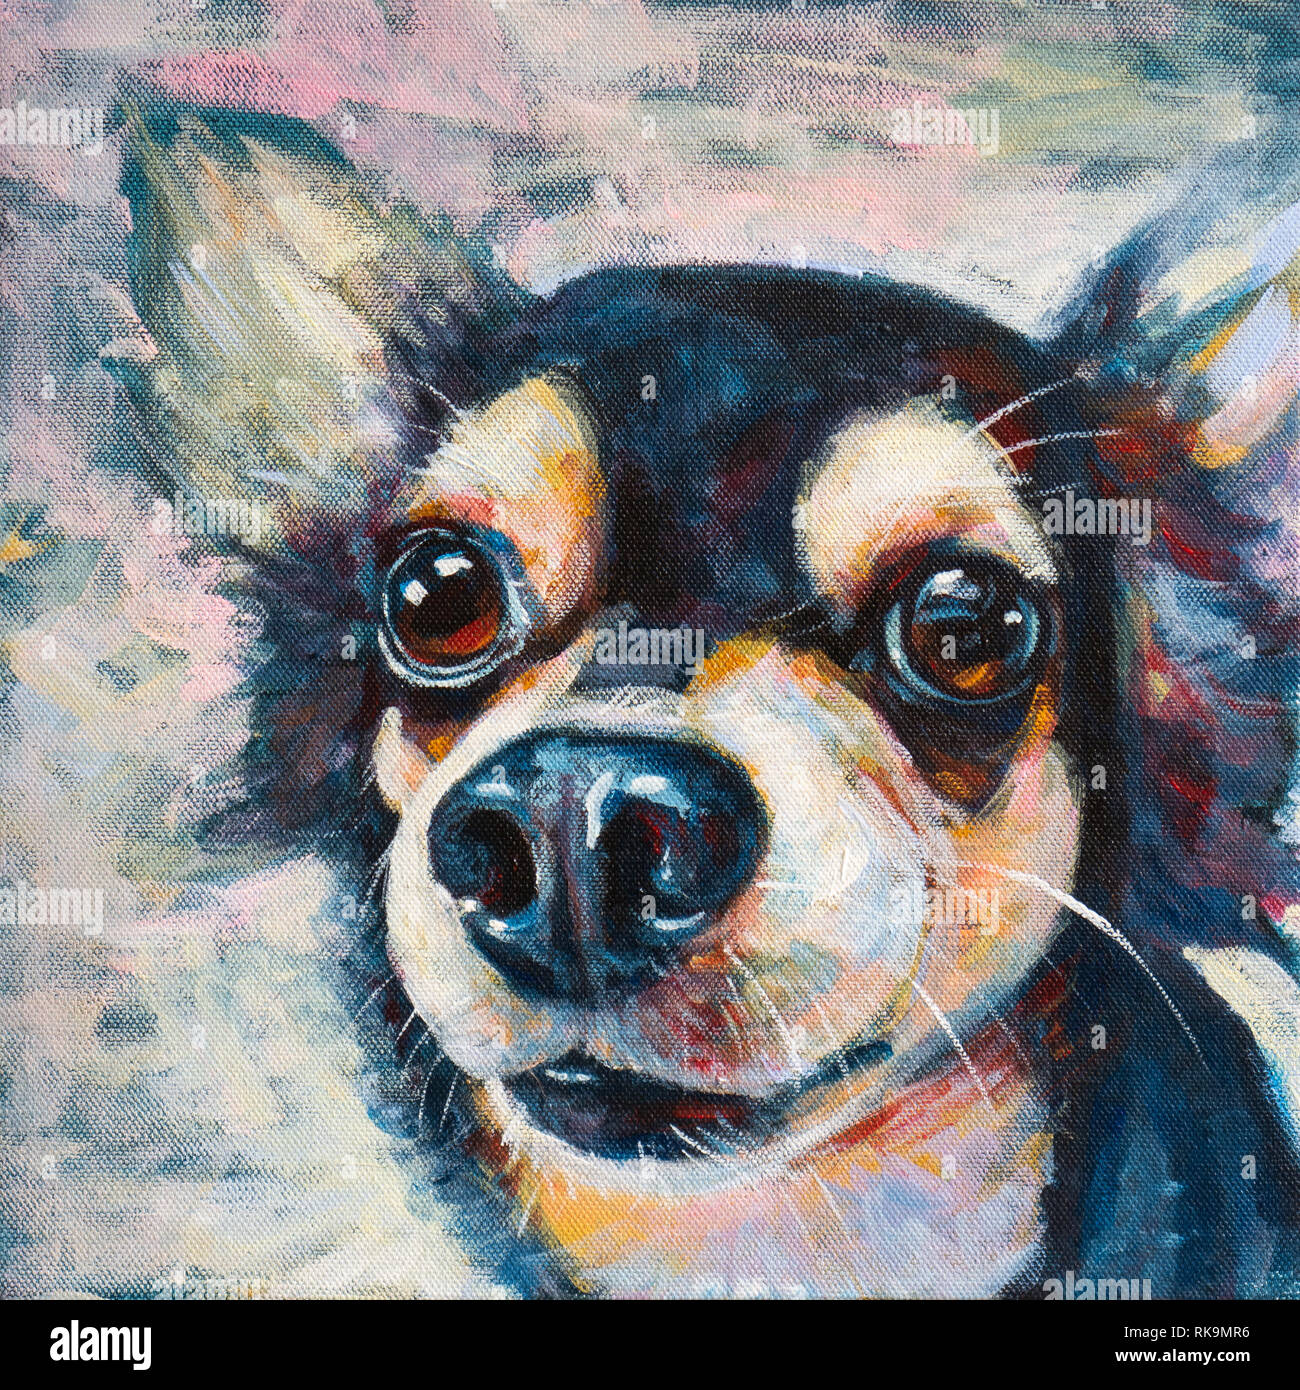 14f0111967863 Adorable Chihuahua Photos   Adorable Chihuahua Images - Alamy